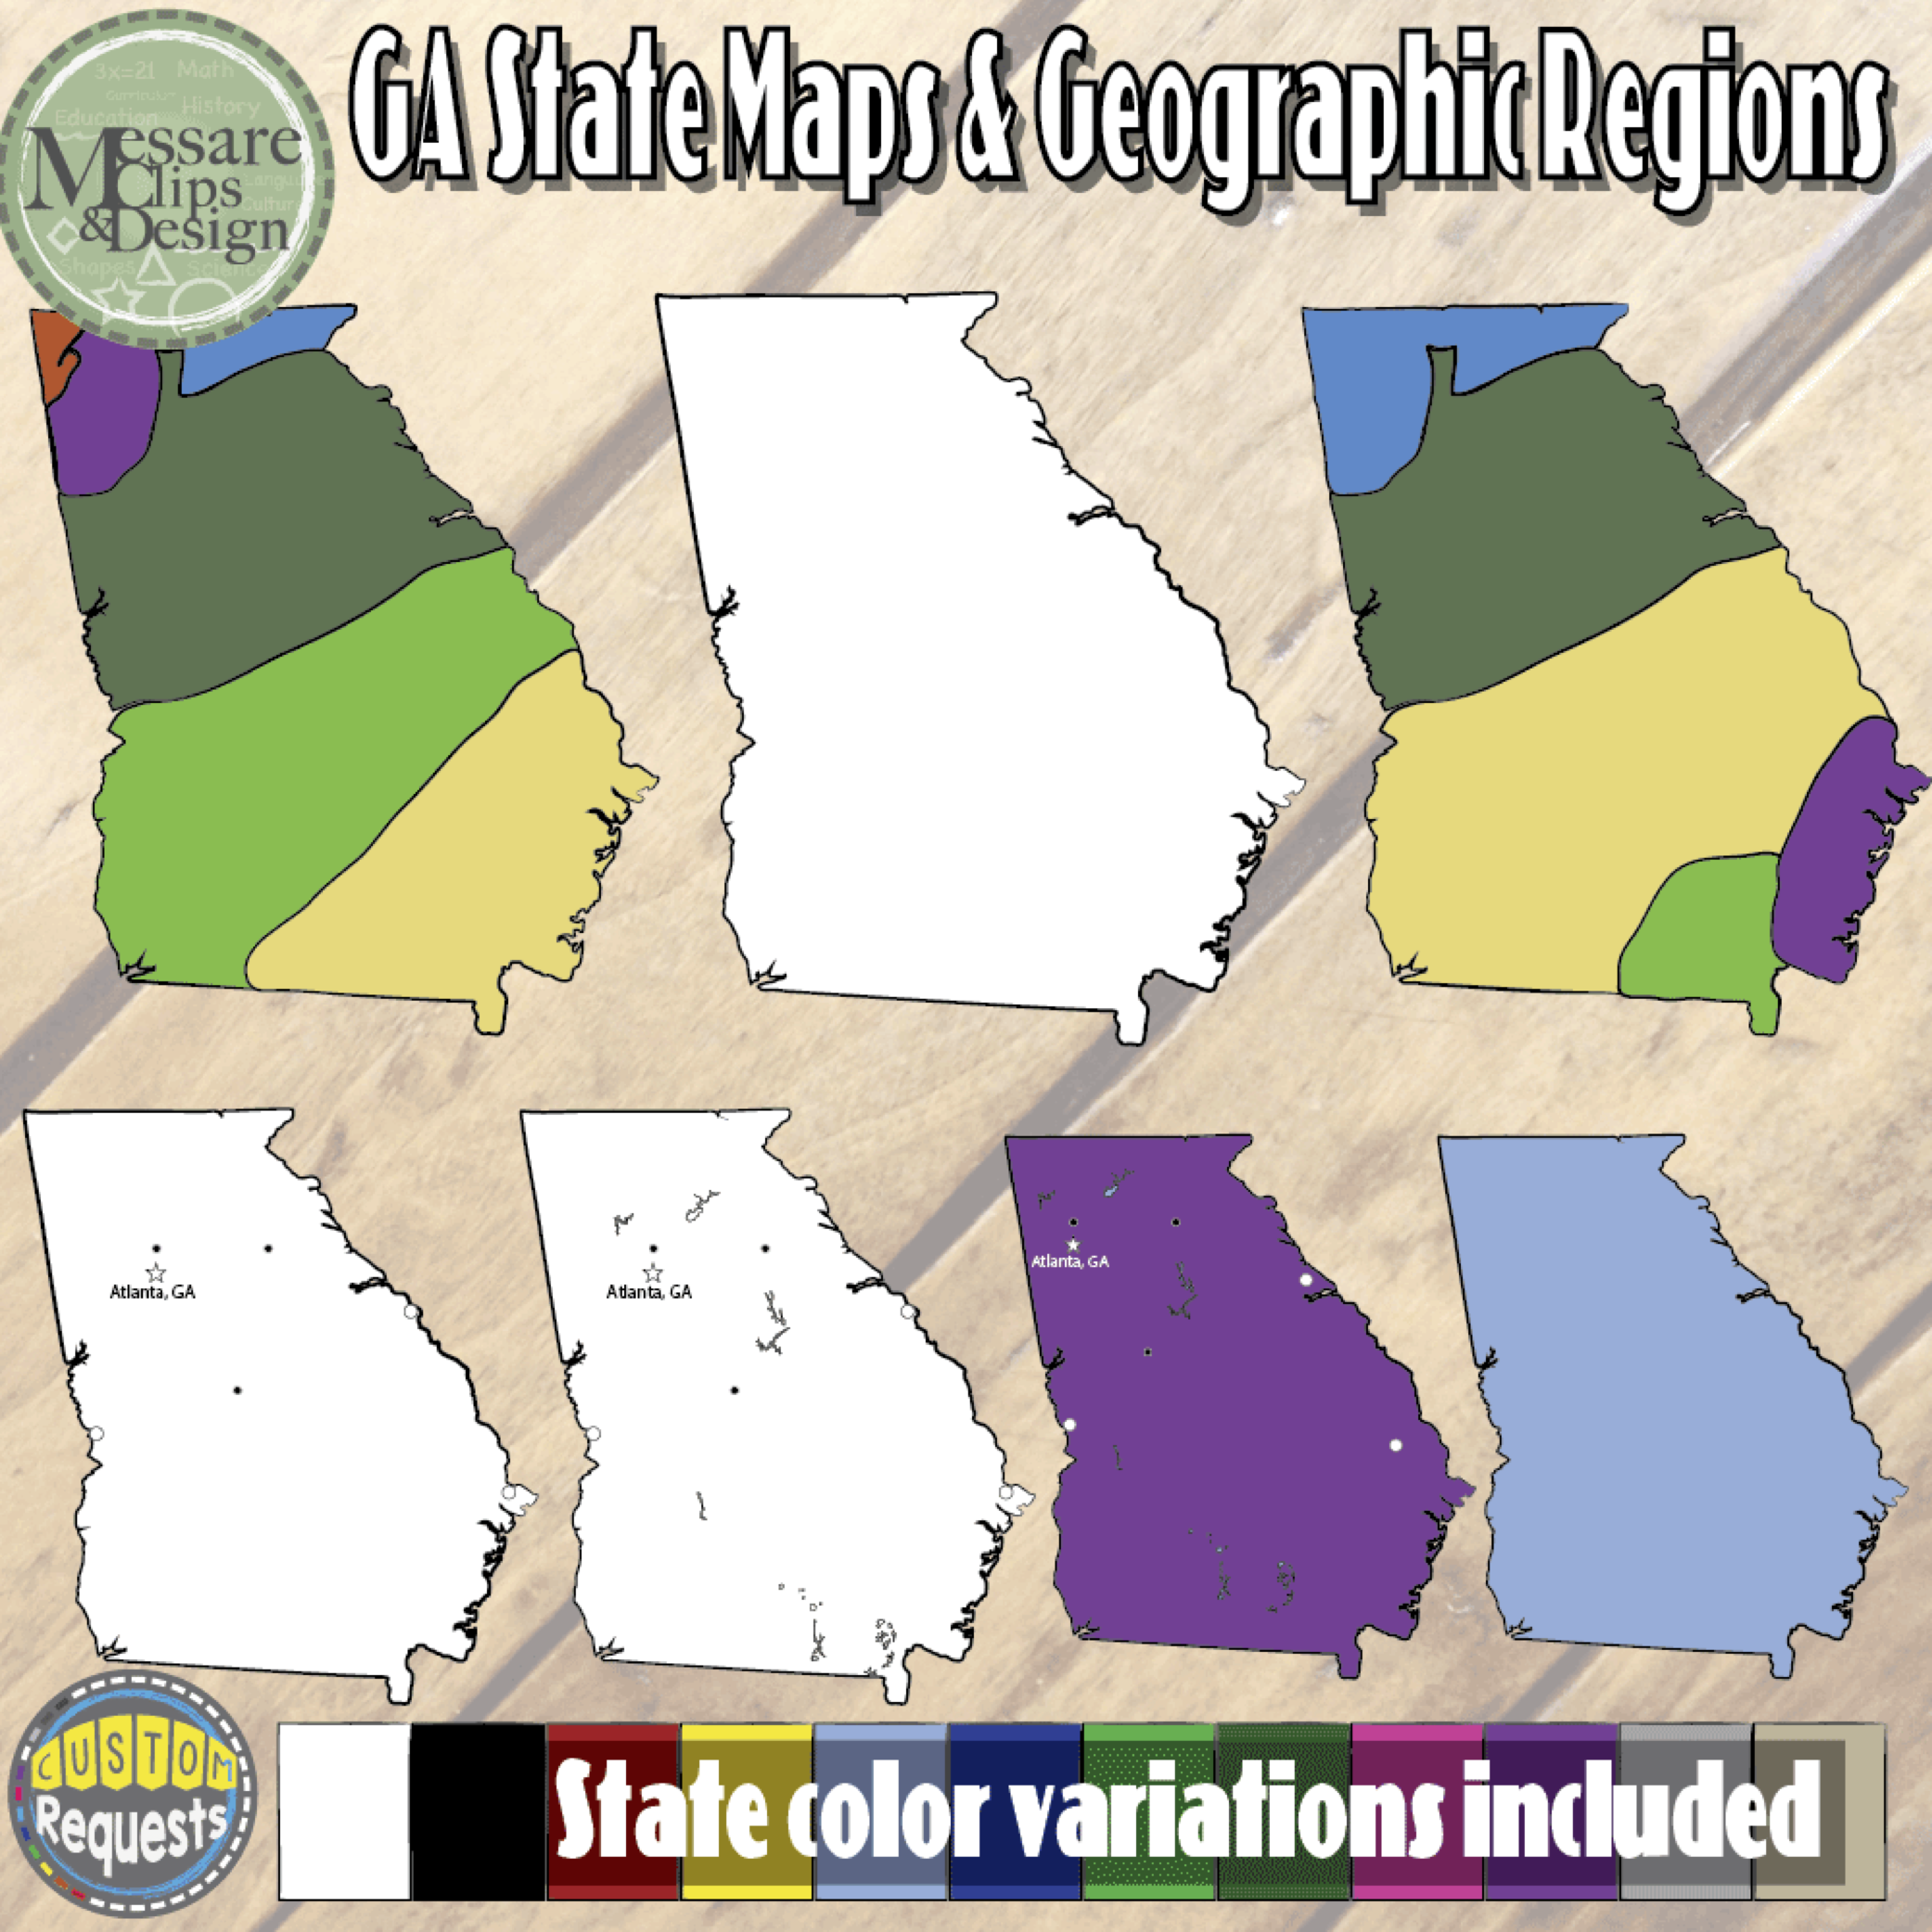 Usa georgia maps and geographic regions set messare clips and the regular georgia state map set with 26 high sciox Gallery